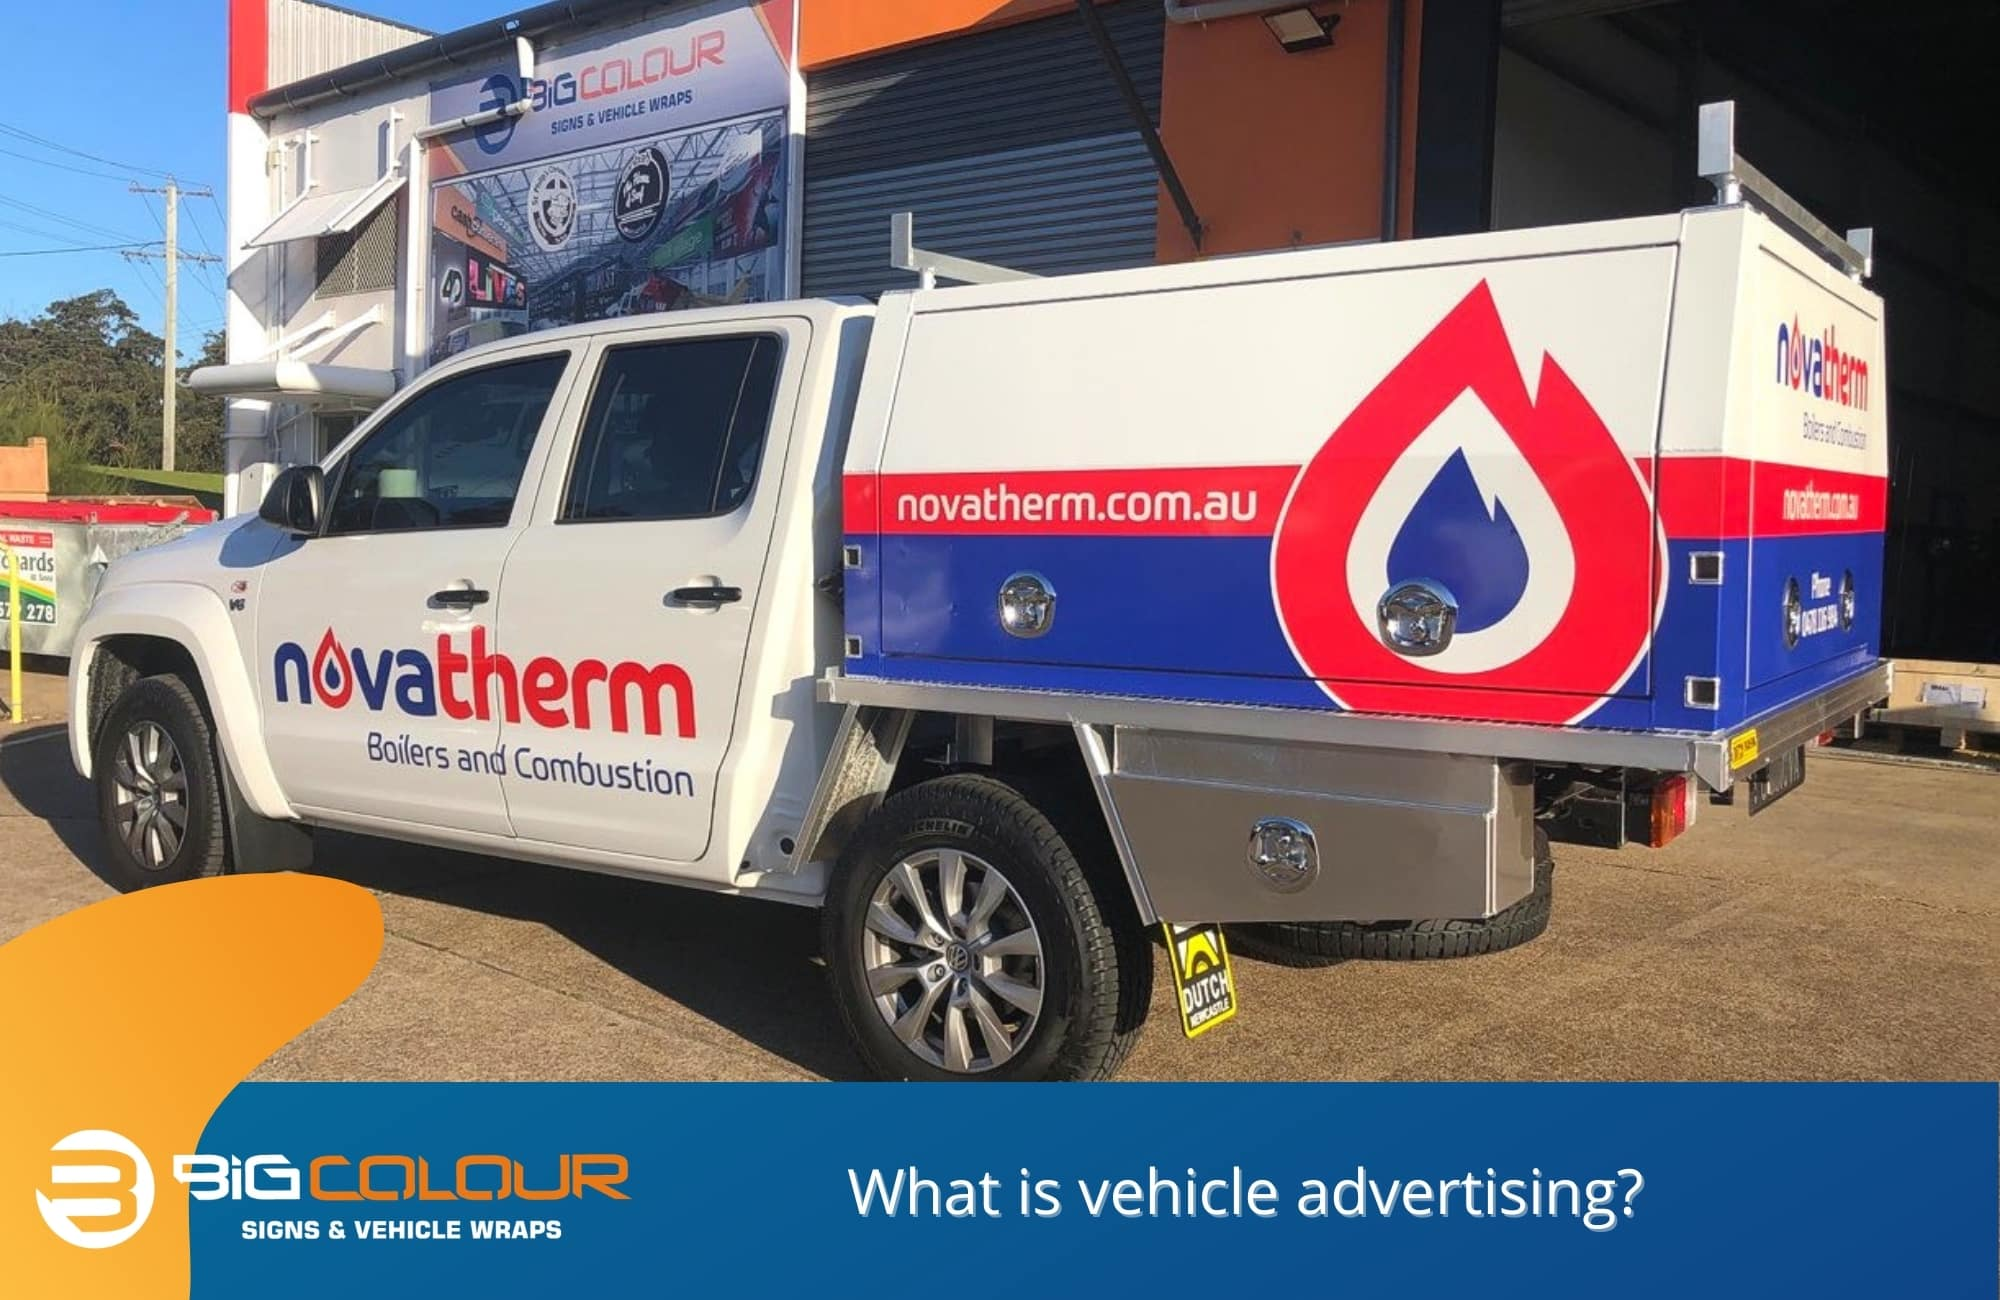 What is vehicle advertising